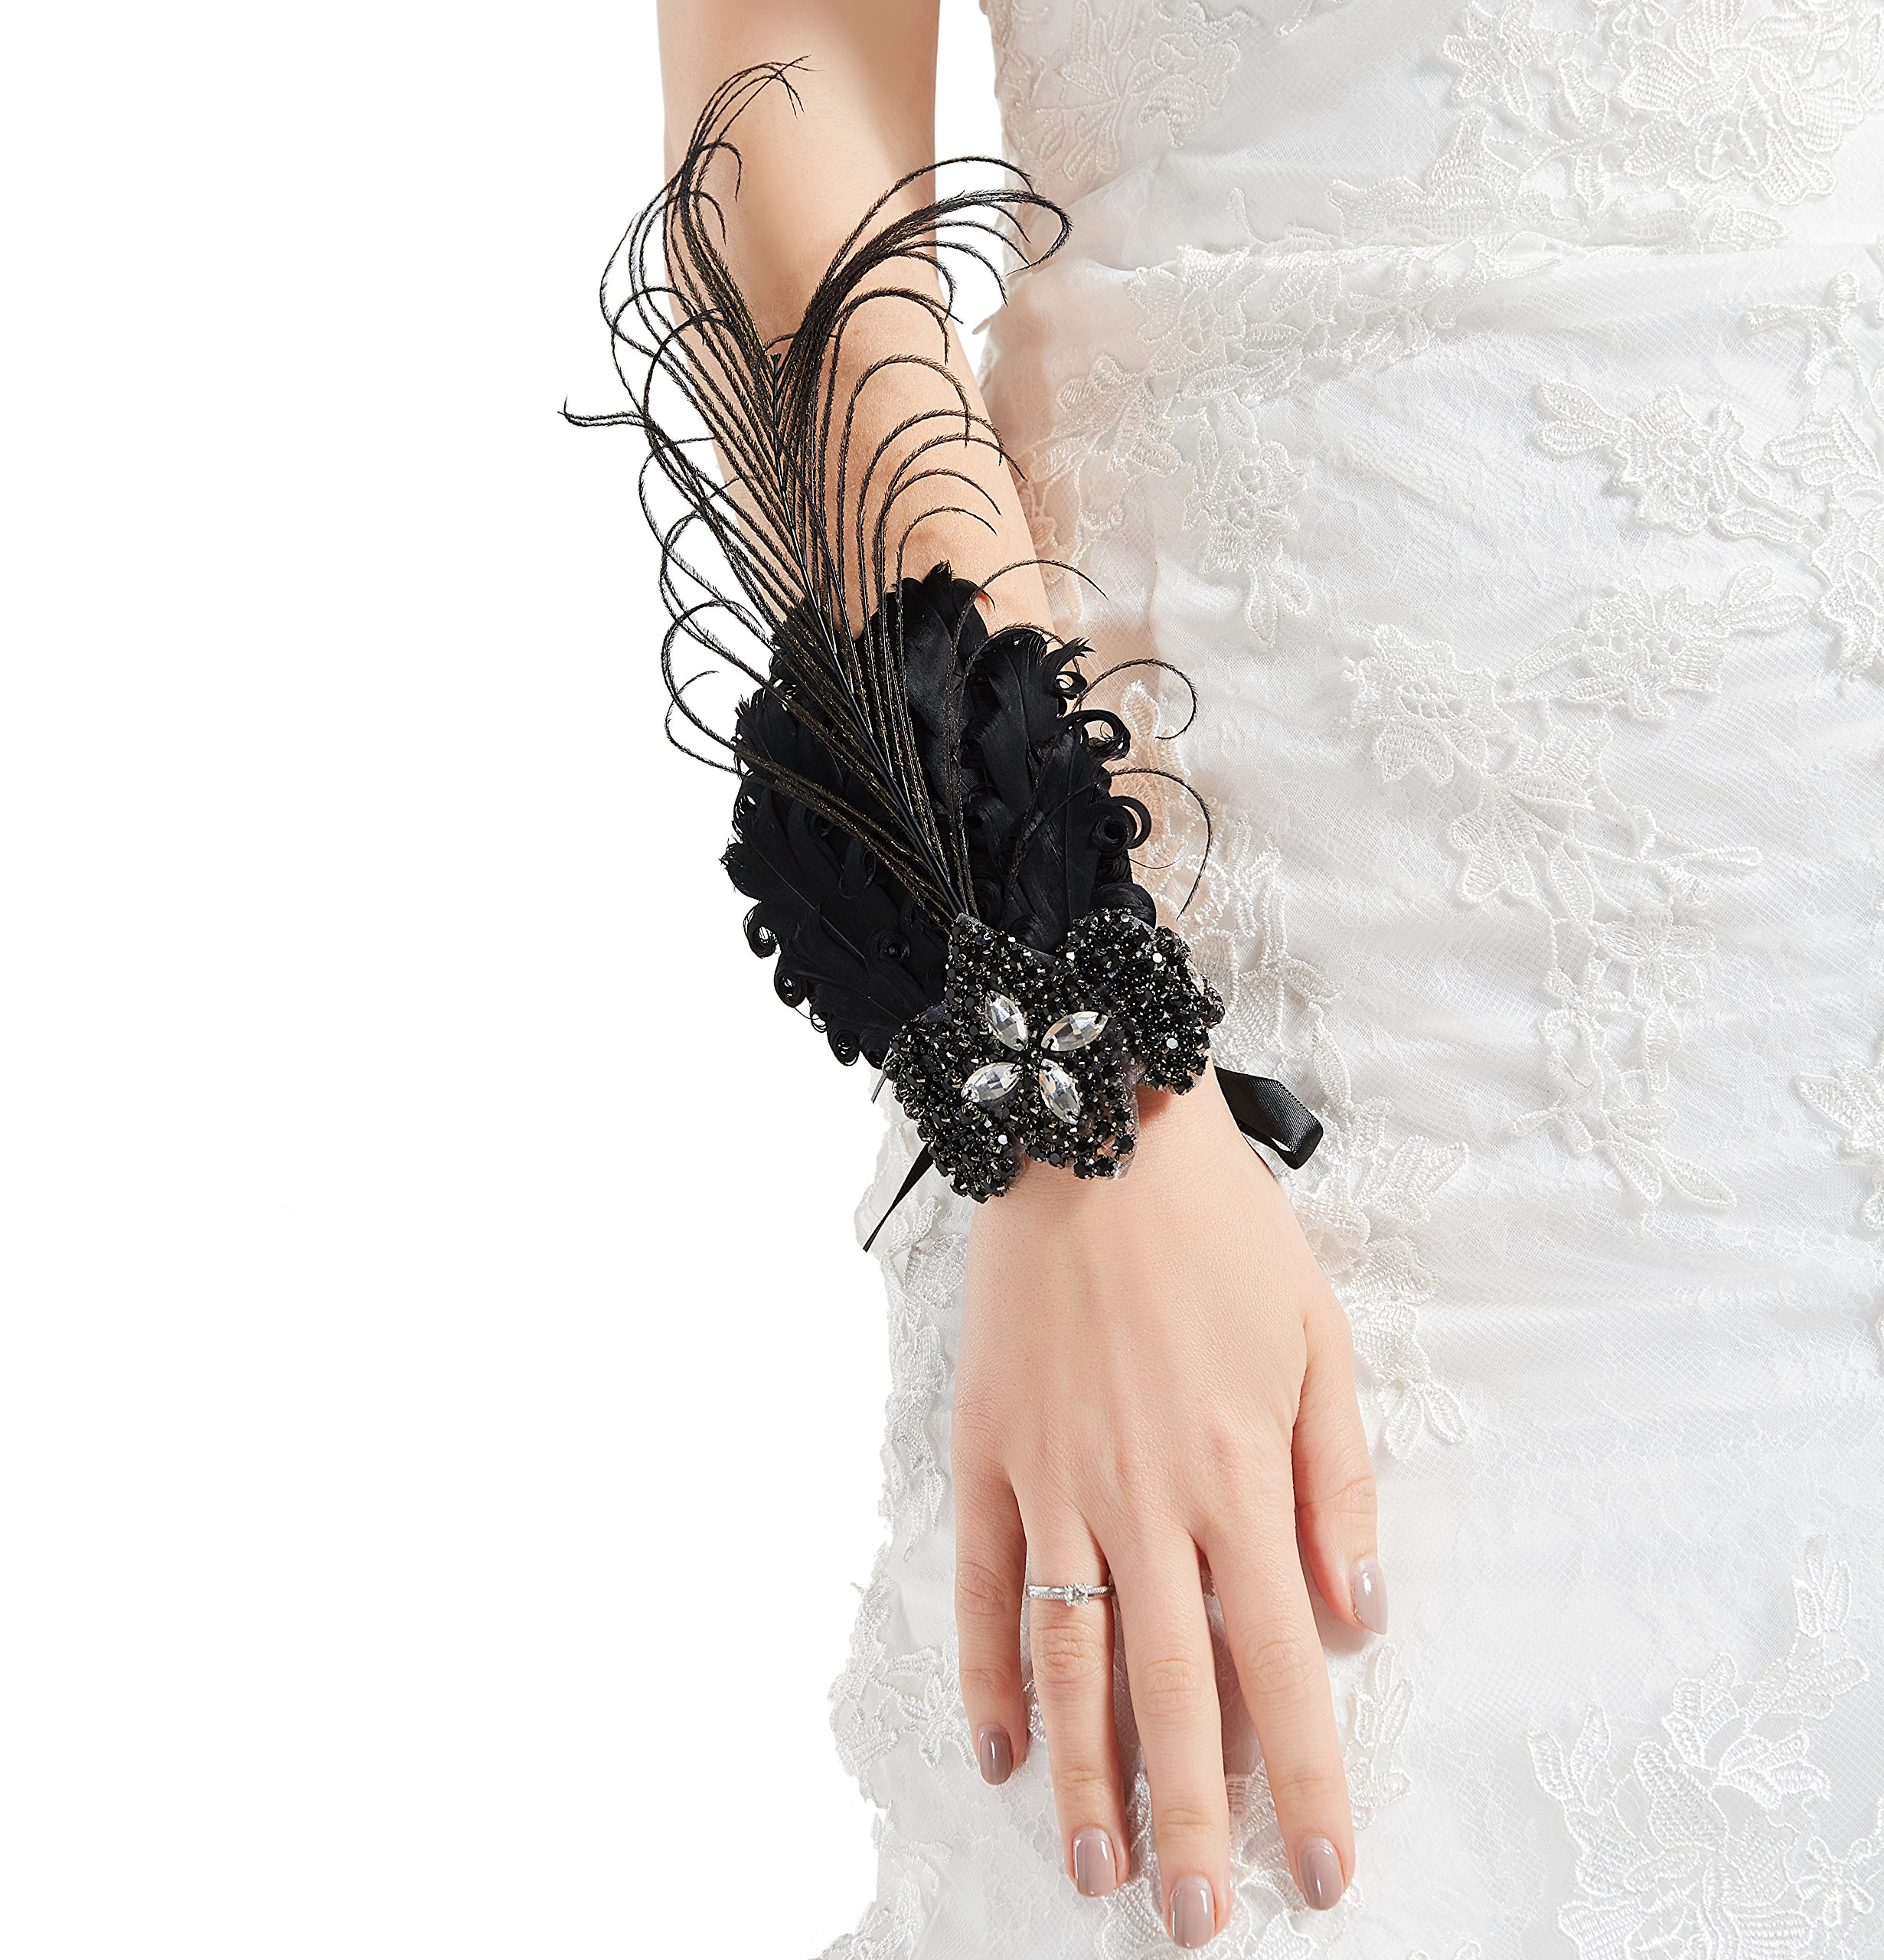 BABEYOND 1920s Wedding Wrist Corsage Gatsby Peacock Feather Bridal Wristband Corsage Roaring 20s Flapper Wedding Costume Accessories (Black by BABEYOND (Image #1)